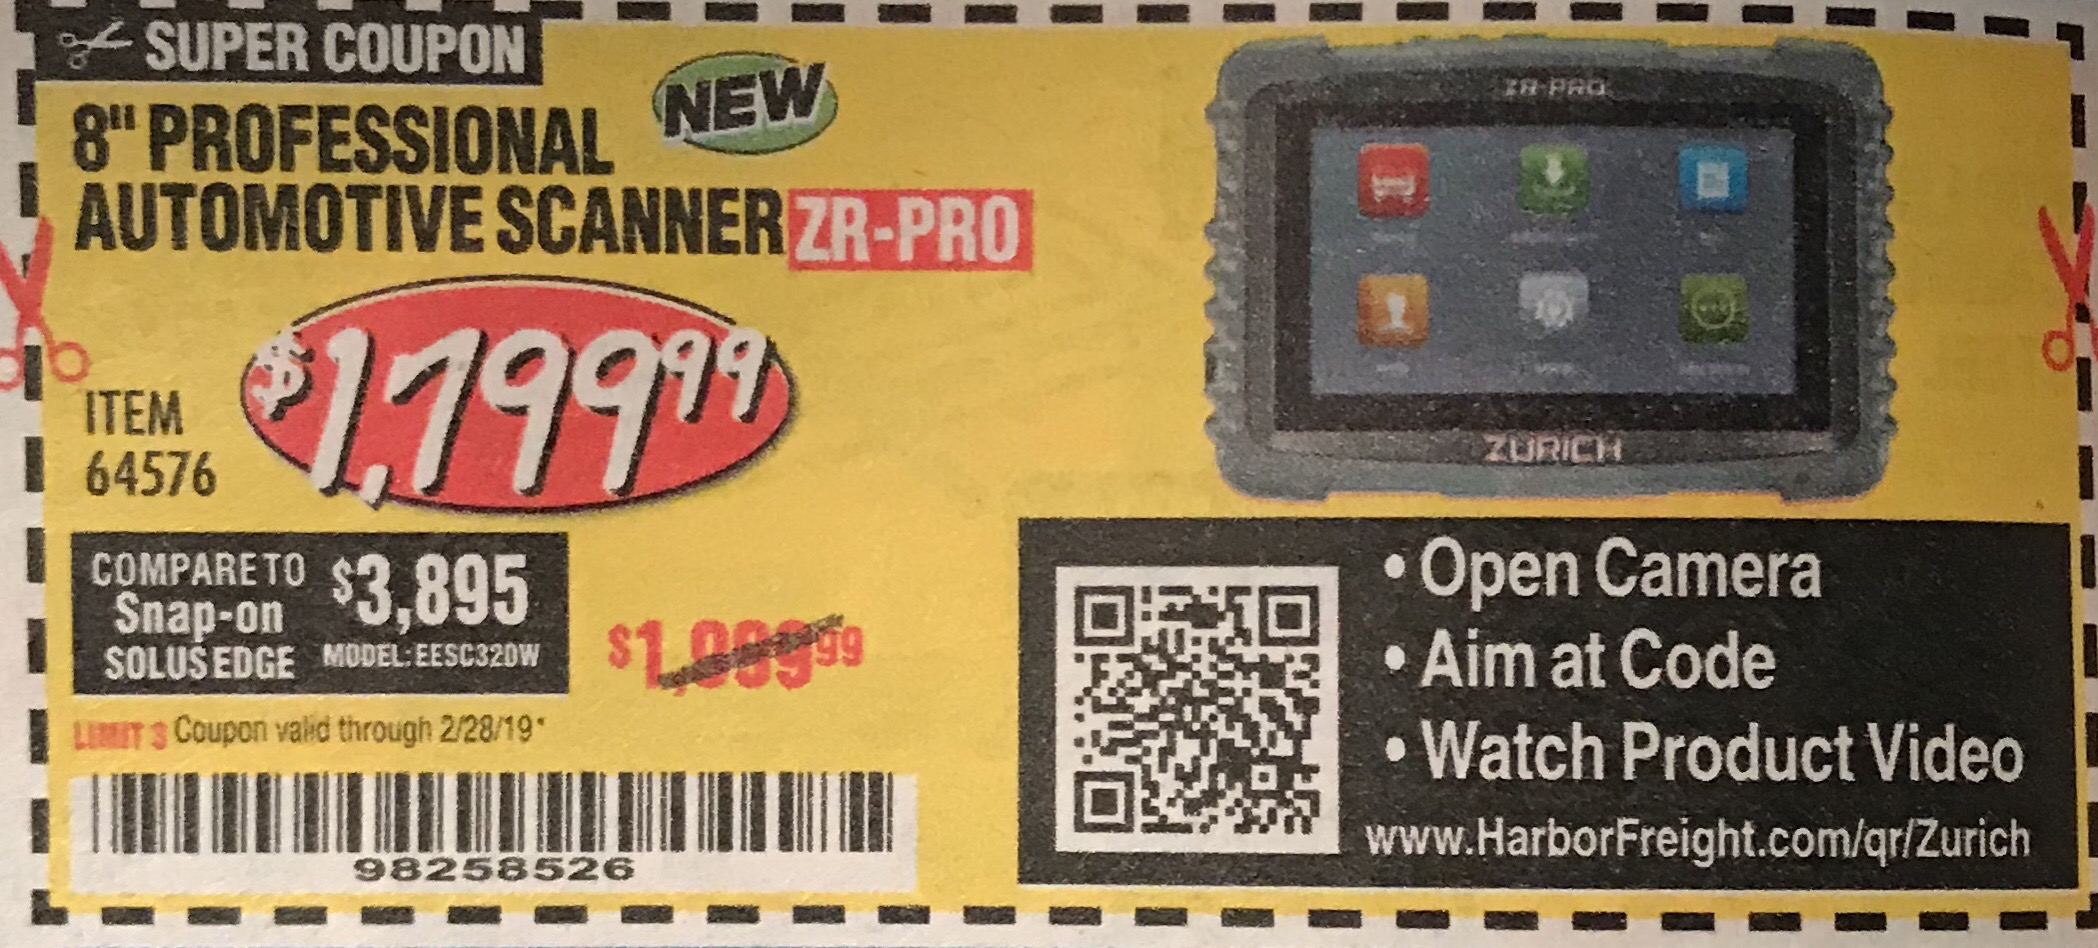 Harbor Freight ZURICH ZR-PRO PROFESSIONAL AUTO SCANNER coupon